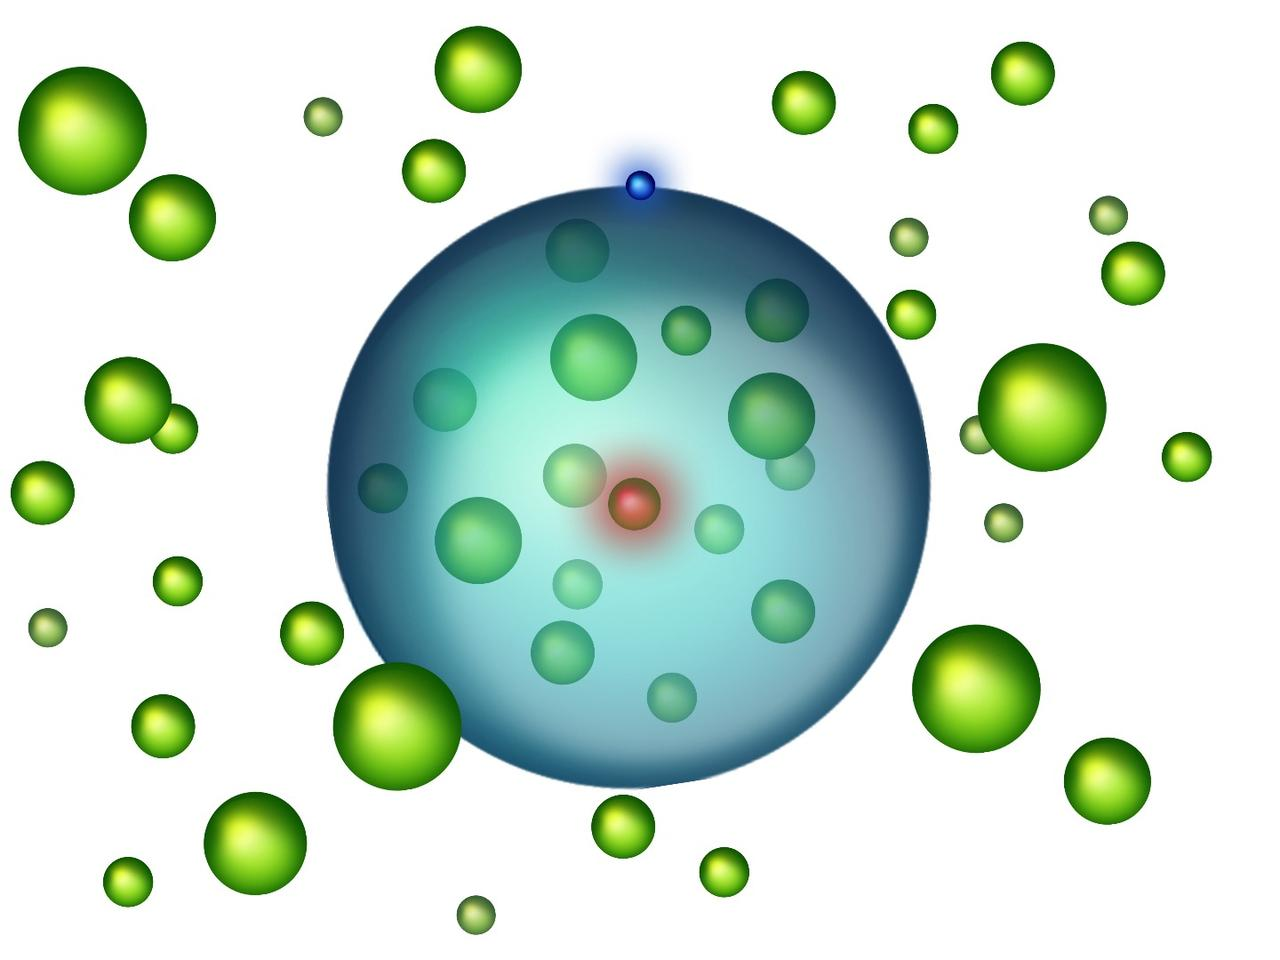 An excited electron (blue) orbits the nucleus (red) of an atom at such a wide distance that other atoms (green) can fit inside it, creating a new state of matter known as Rydberg polarons